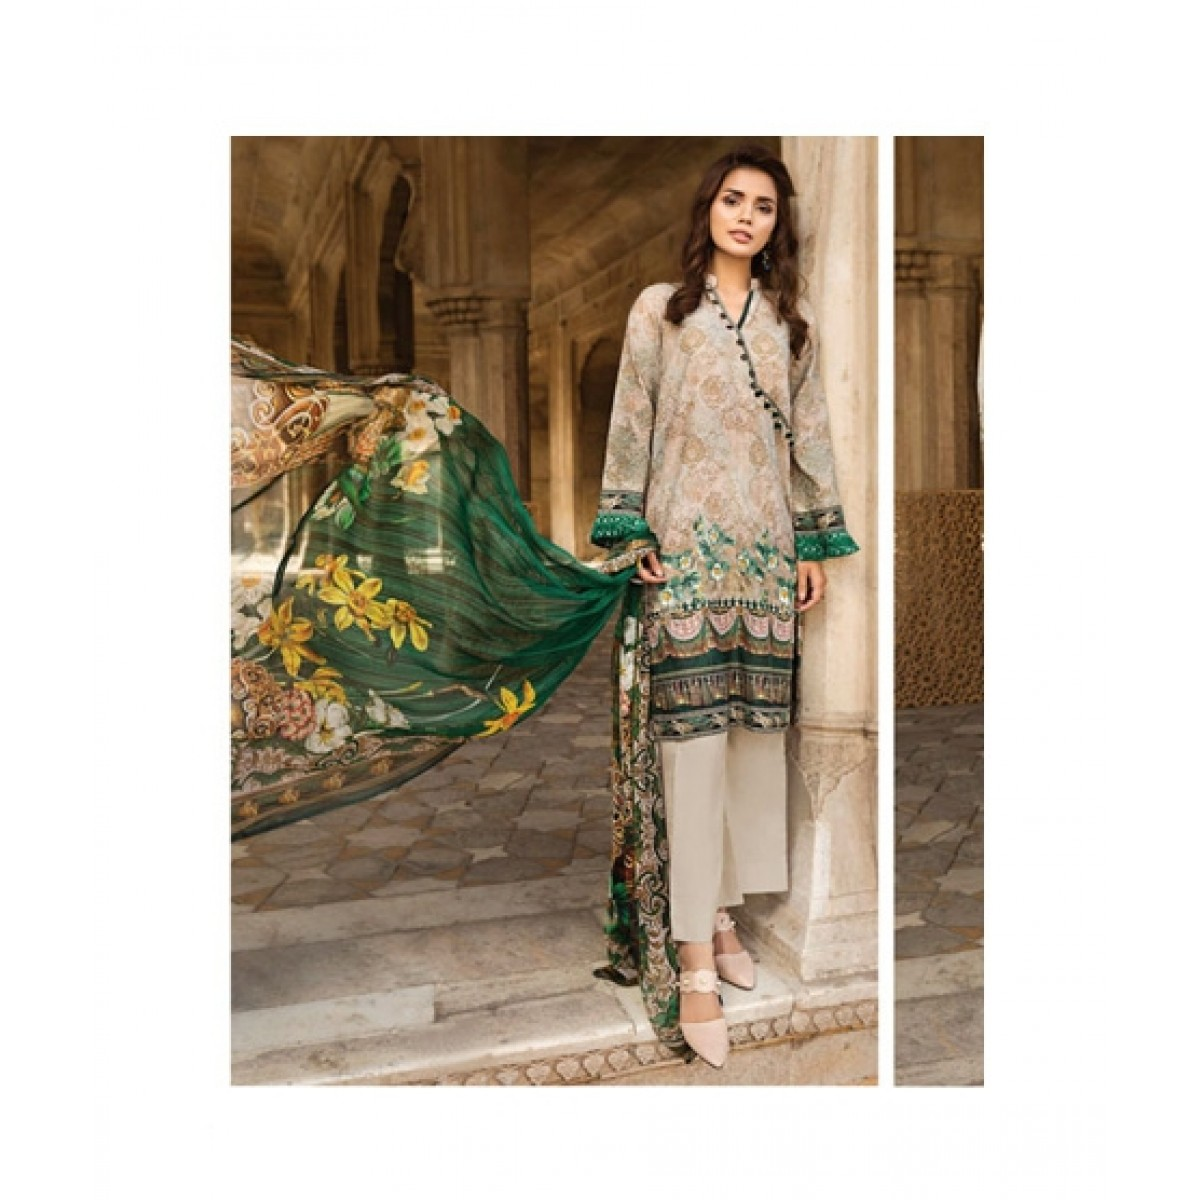 b27e1b49ec Resham Ghar Printed Women's Lawn Price in Pakistan | Buy Resham Ghar  Women's Lawn Vol-1 Collection 2018 (JL-02) | iShopping.pk